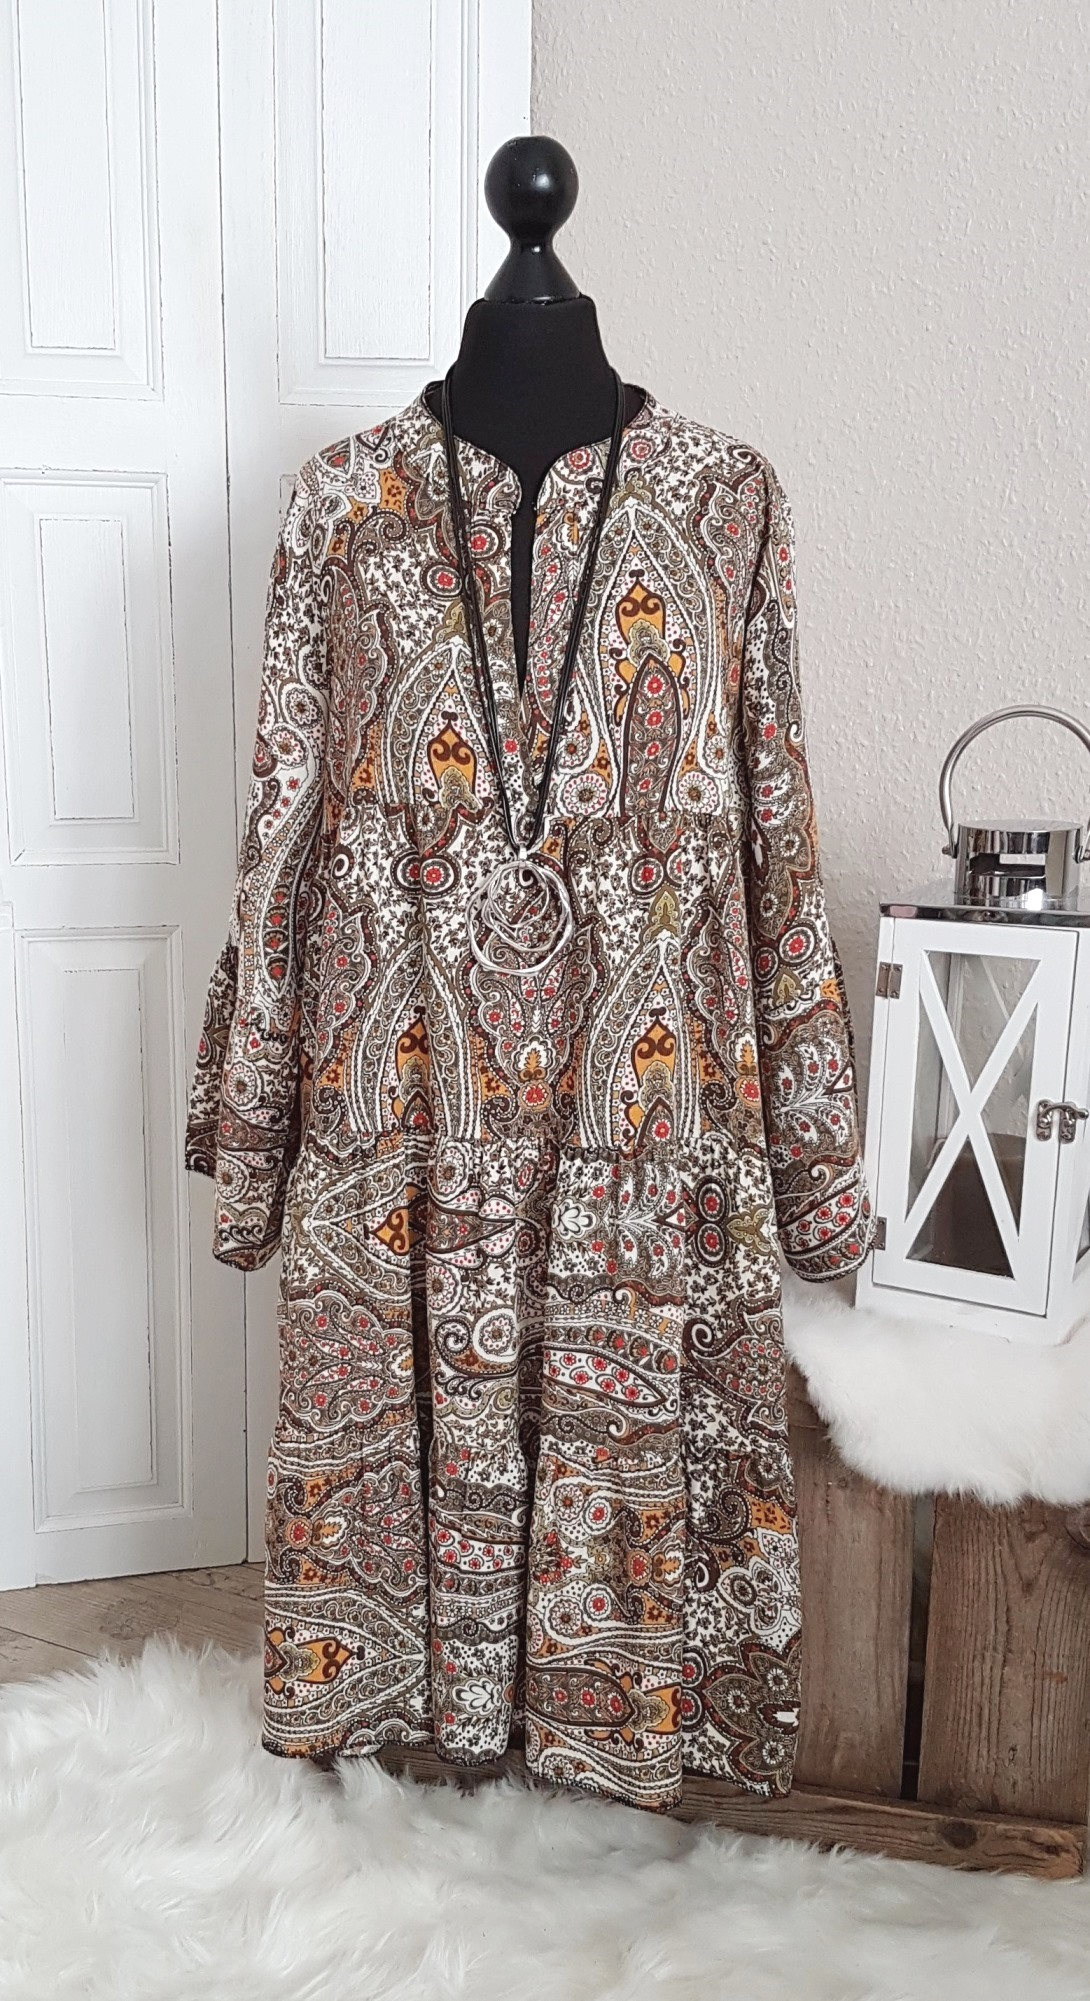 Kleid Mit Paisley Muster Modepark Rother Online Shop